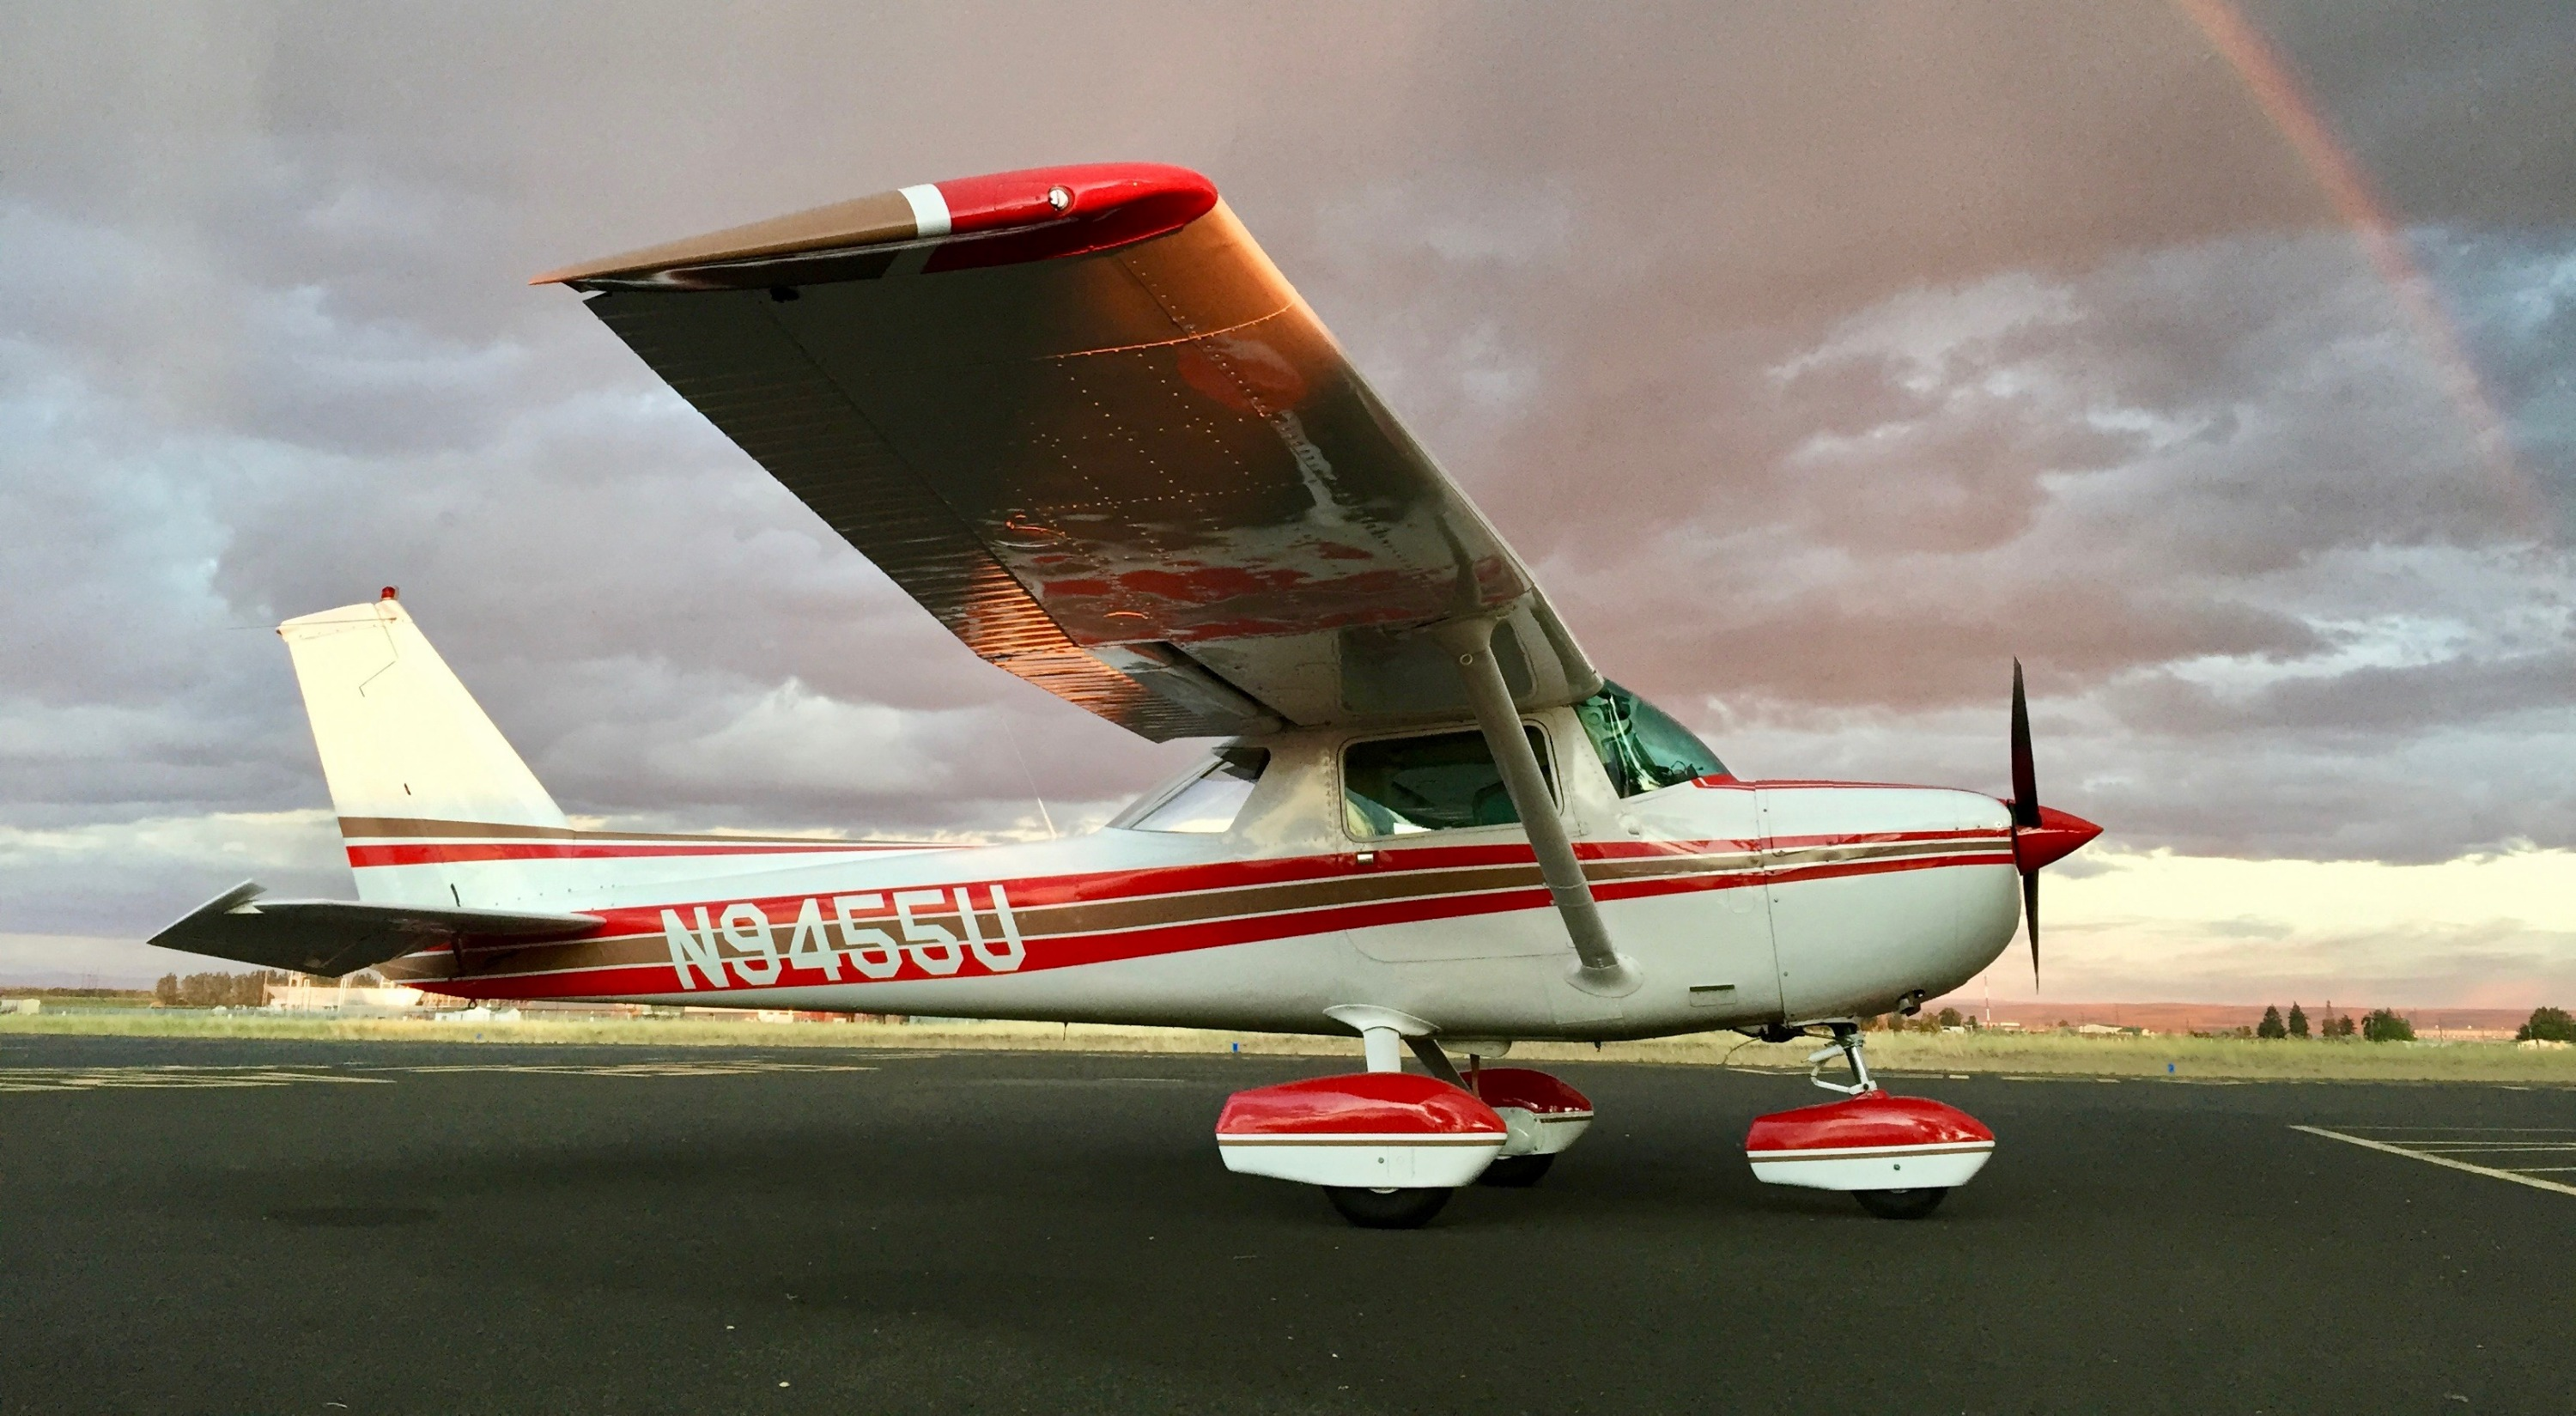 ENTER TO WIN THIS CESSNA!